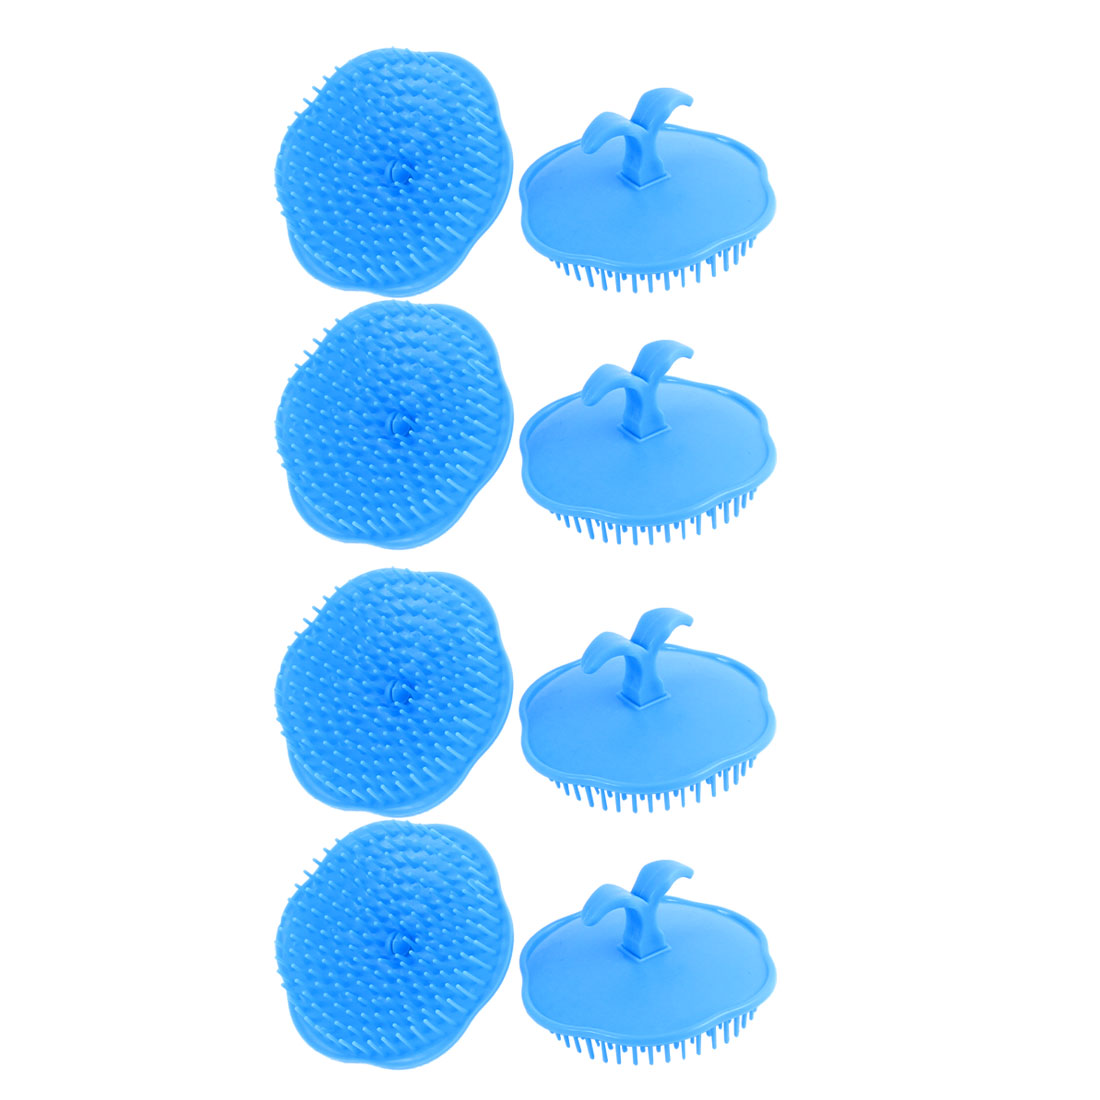 Shampoo Scalp Hair Shower Massage Comb Brush Sky Blue 8Pcs